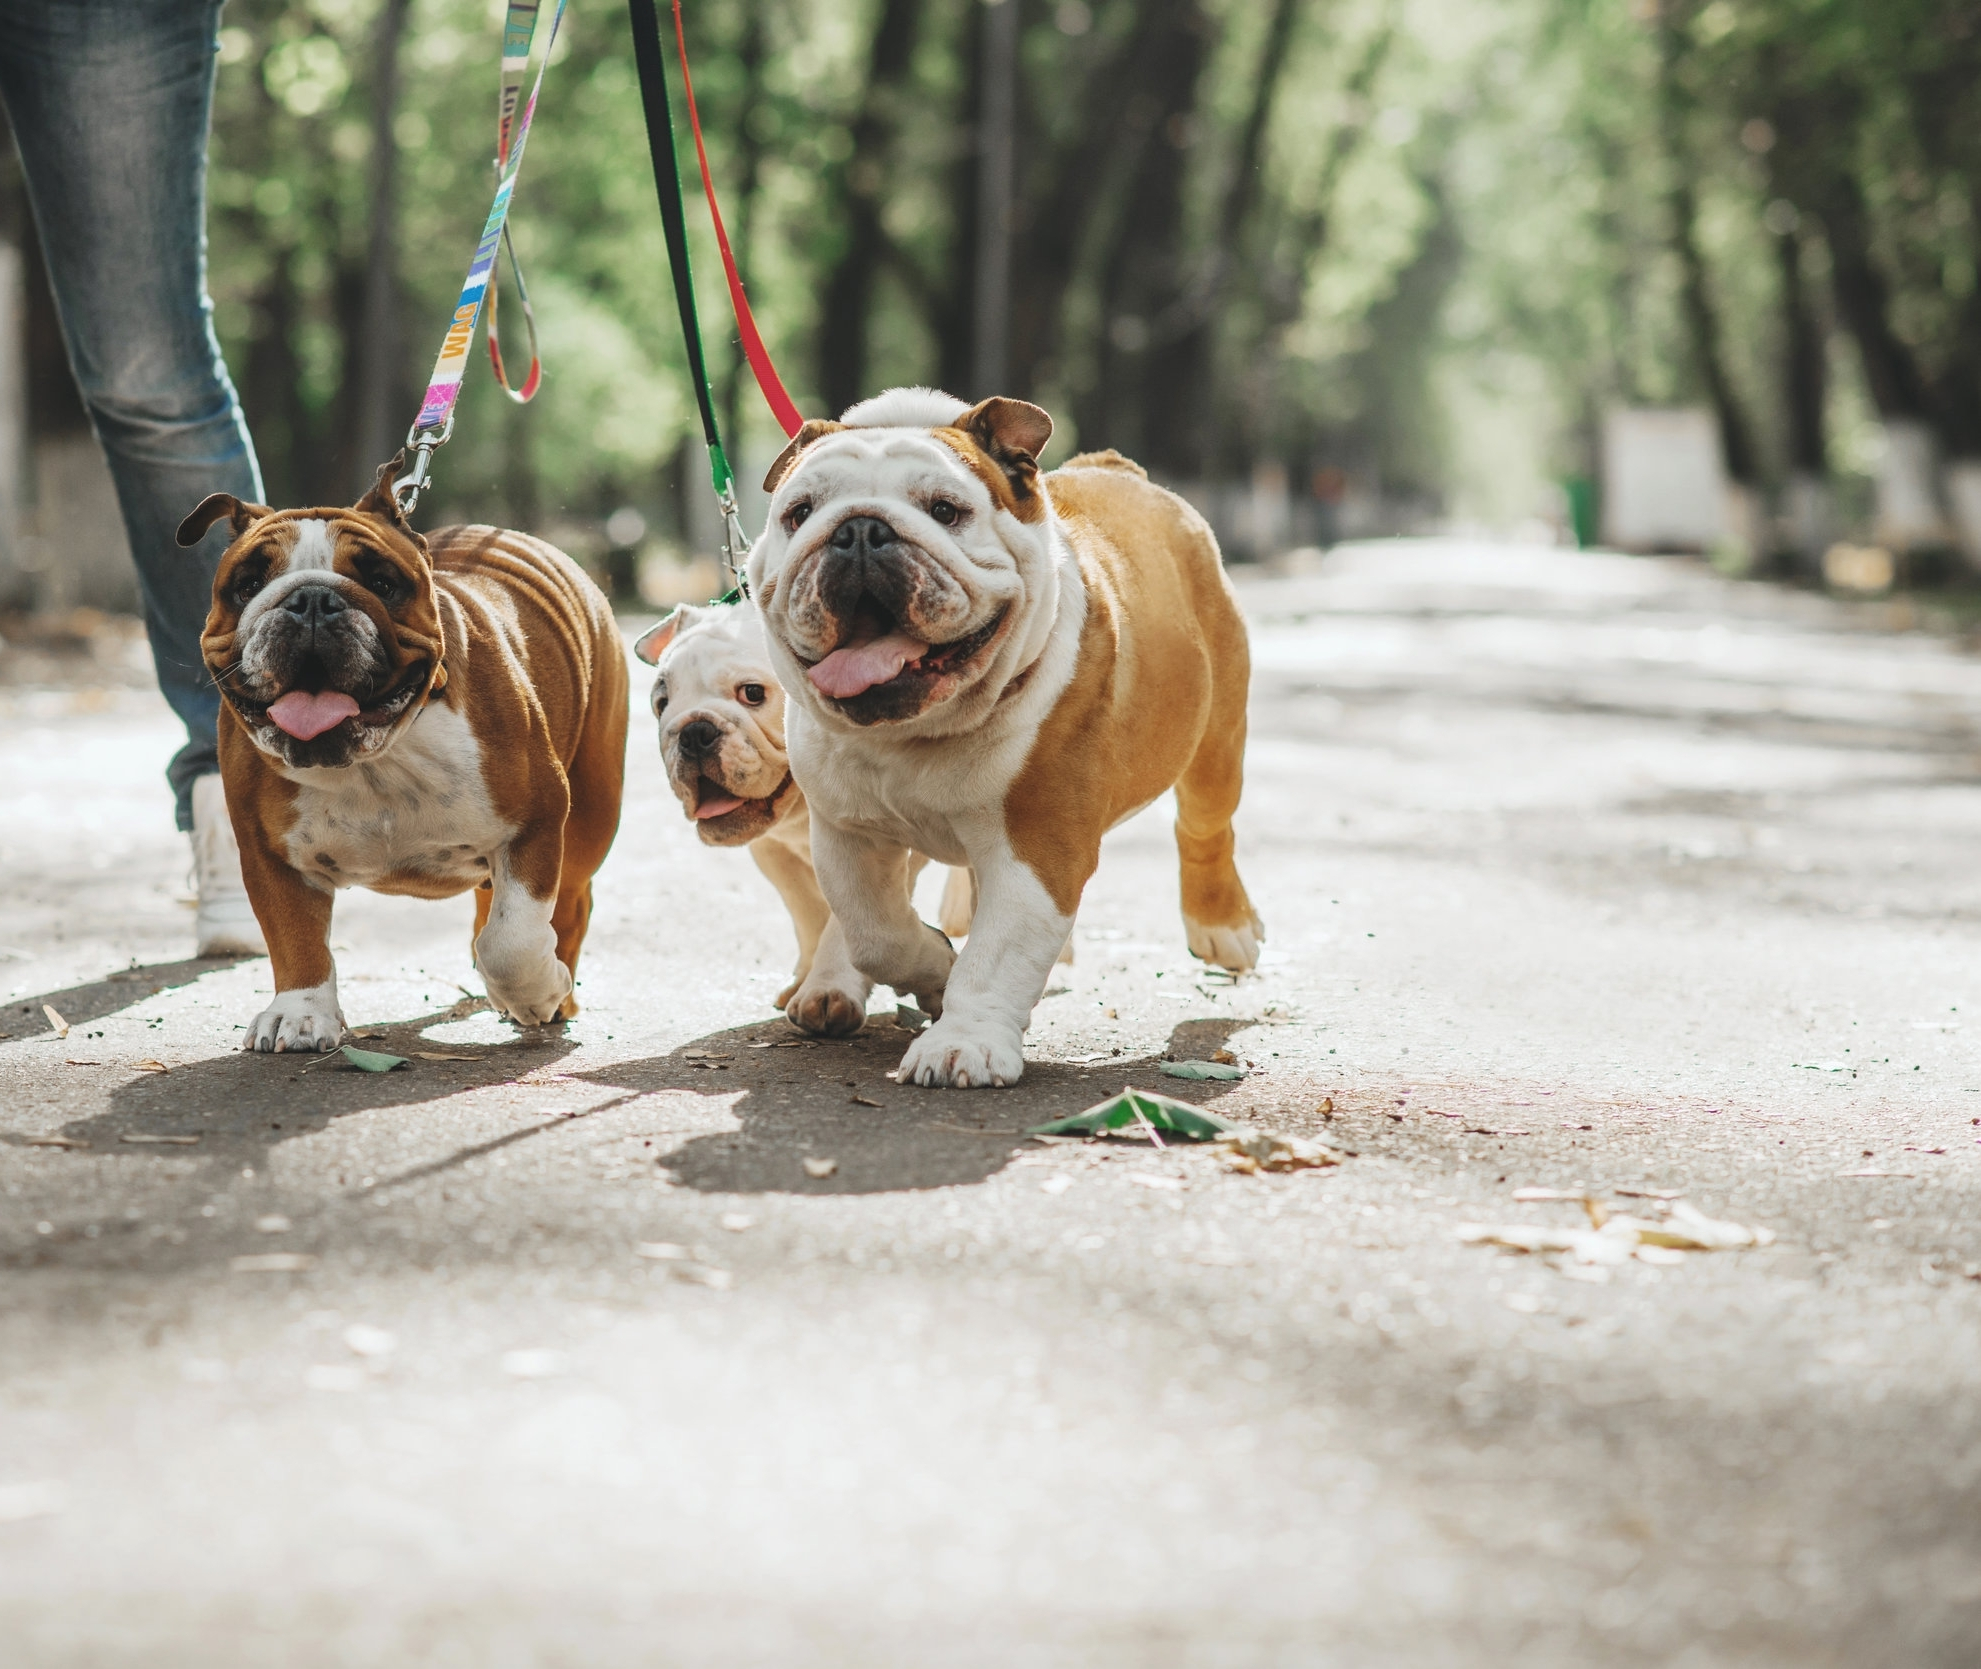 60 MINUTE WALK - Doggie Dreamz offers 60 min walks for your dogs! These walks are private with just your dog(s) with a two dog limit. Our private walks also include freshening their water, administering medication if needed and providing food/treats if requested.